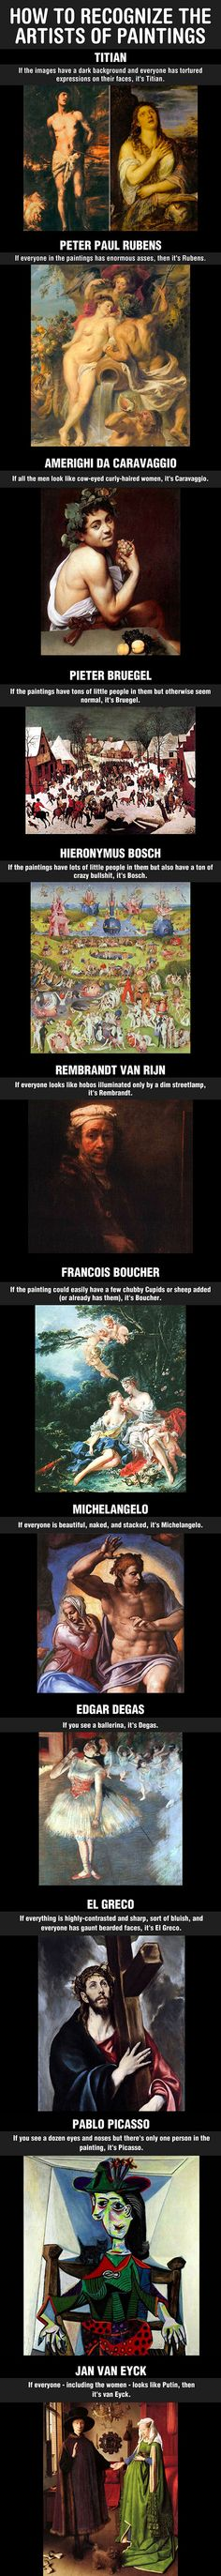 The best way to recognize the artists of paintings… I take AP Art History and…